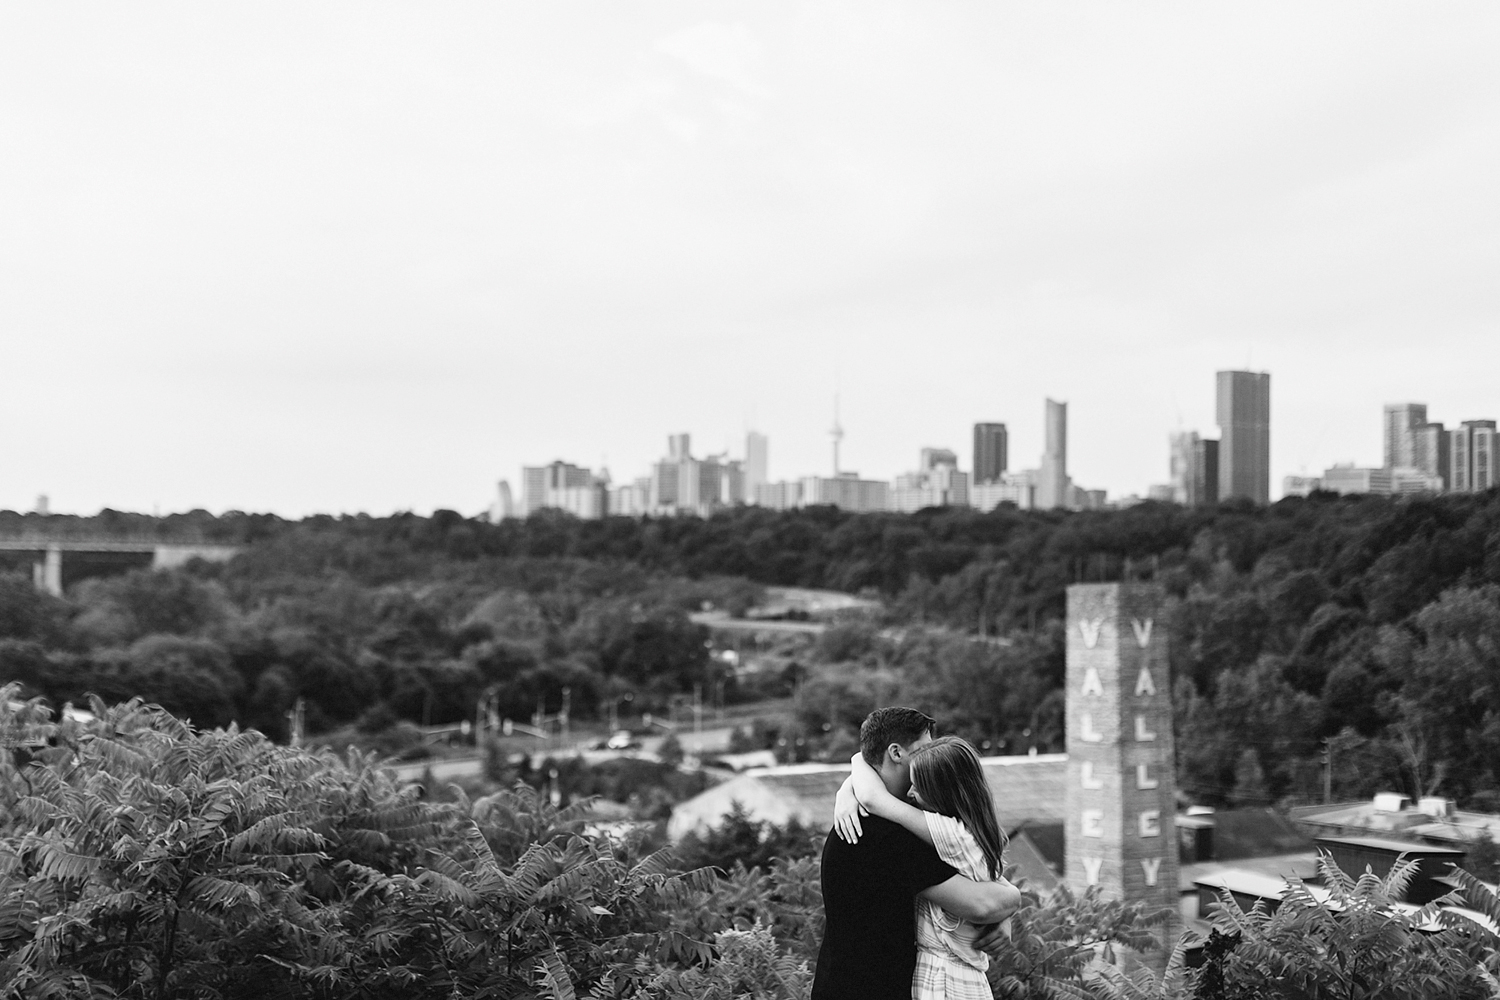 Toronto-Evergreen-Brickworks-Engagement-Photography-best-toronto-wedding-photographers-3b-photography-documentary-photojournalistic-film-analog-photography-couples-portraits-engaged-candid-romantic-artistic-creative-skyline-bw.jpg